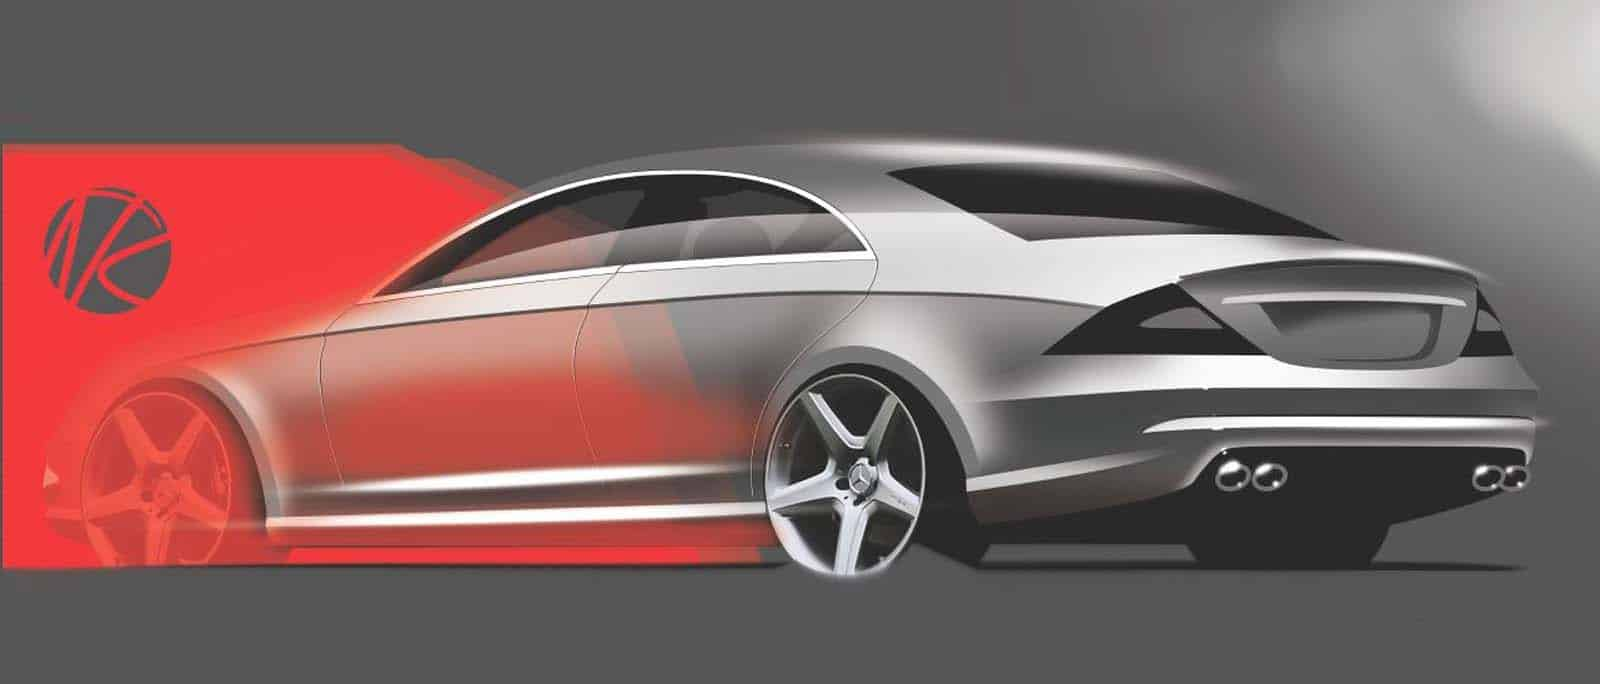 Design Icons Revisiting The Trend Setting Mercedes Benz Cls 2004